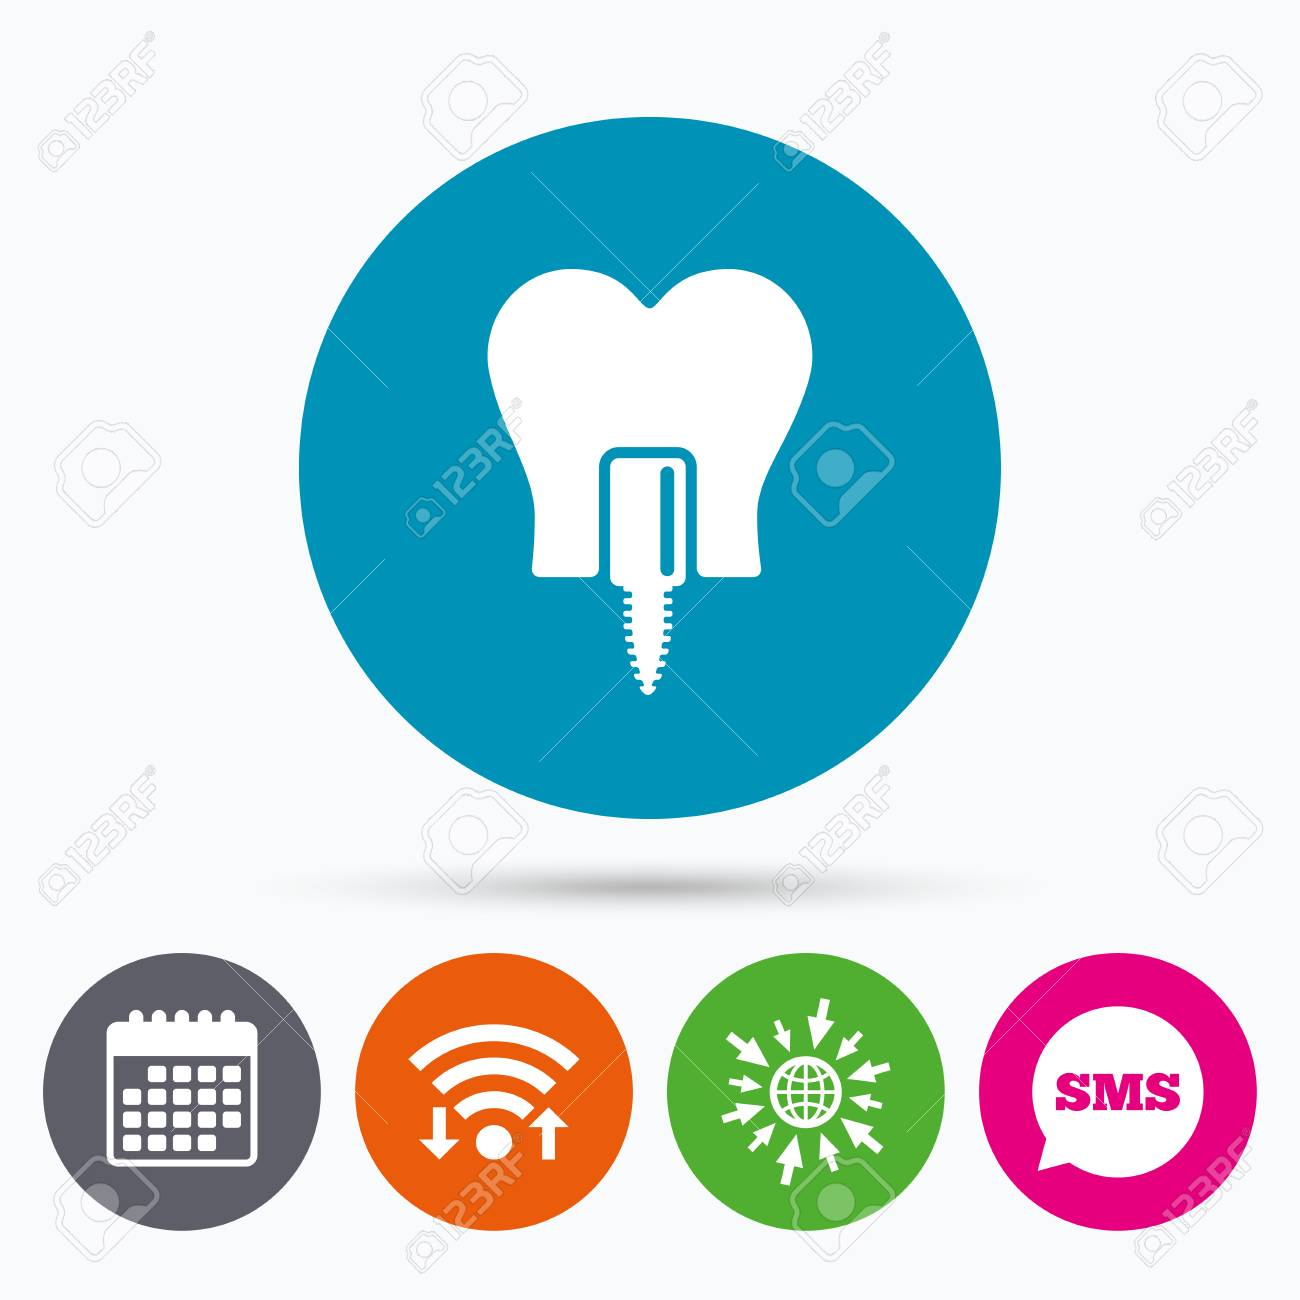 Wifi, Sms and calendar icons  Tooth implant icon  Dental endosseous